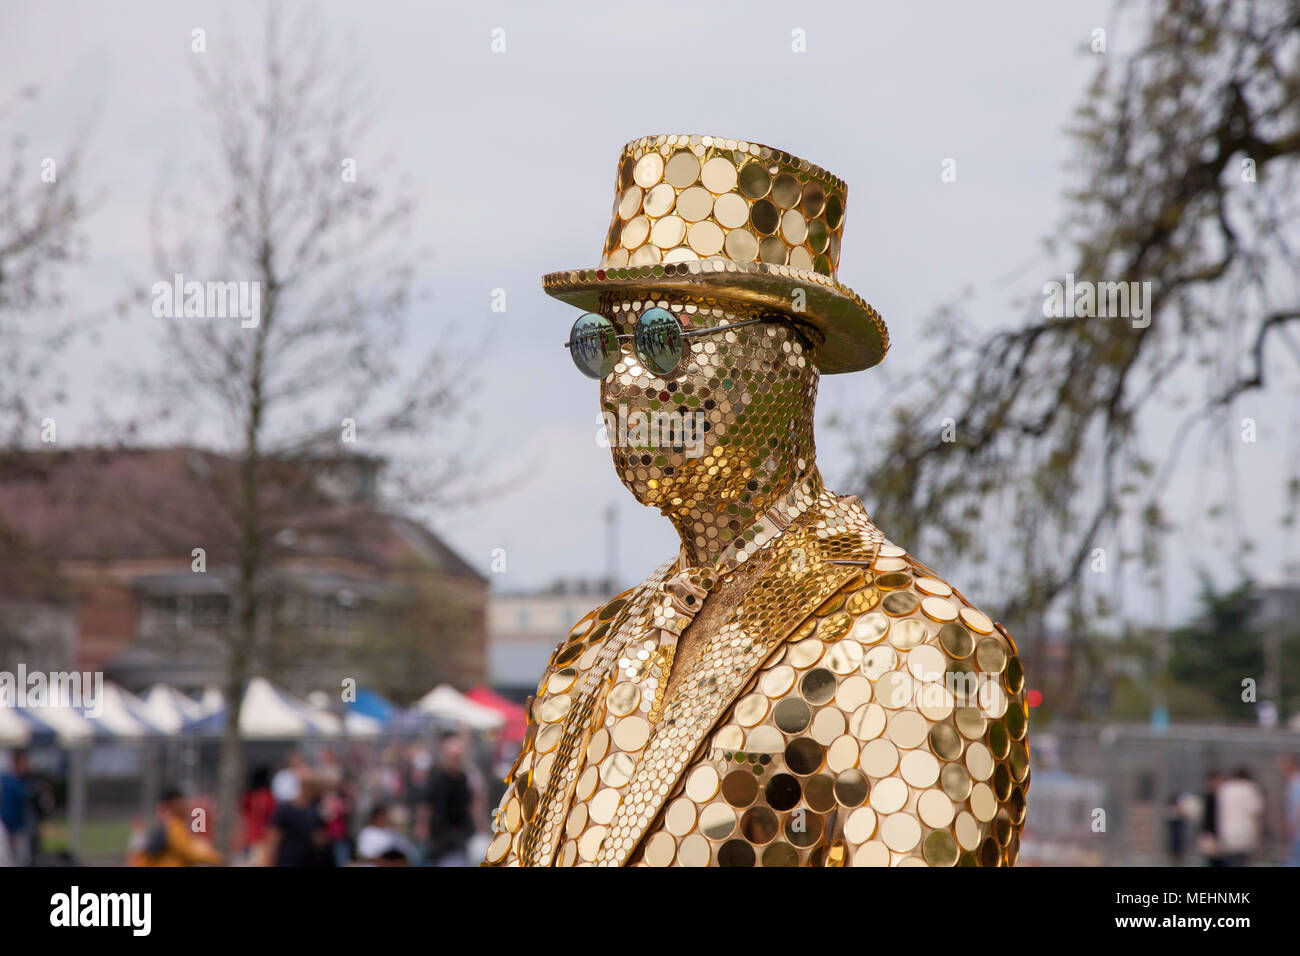 Stratford upon Avon, Warwickshire, 22nd April 2018  The Gold